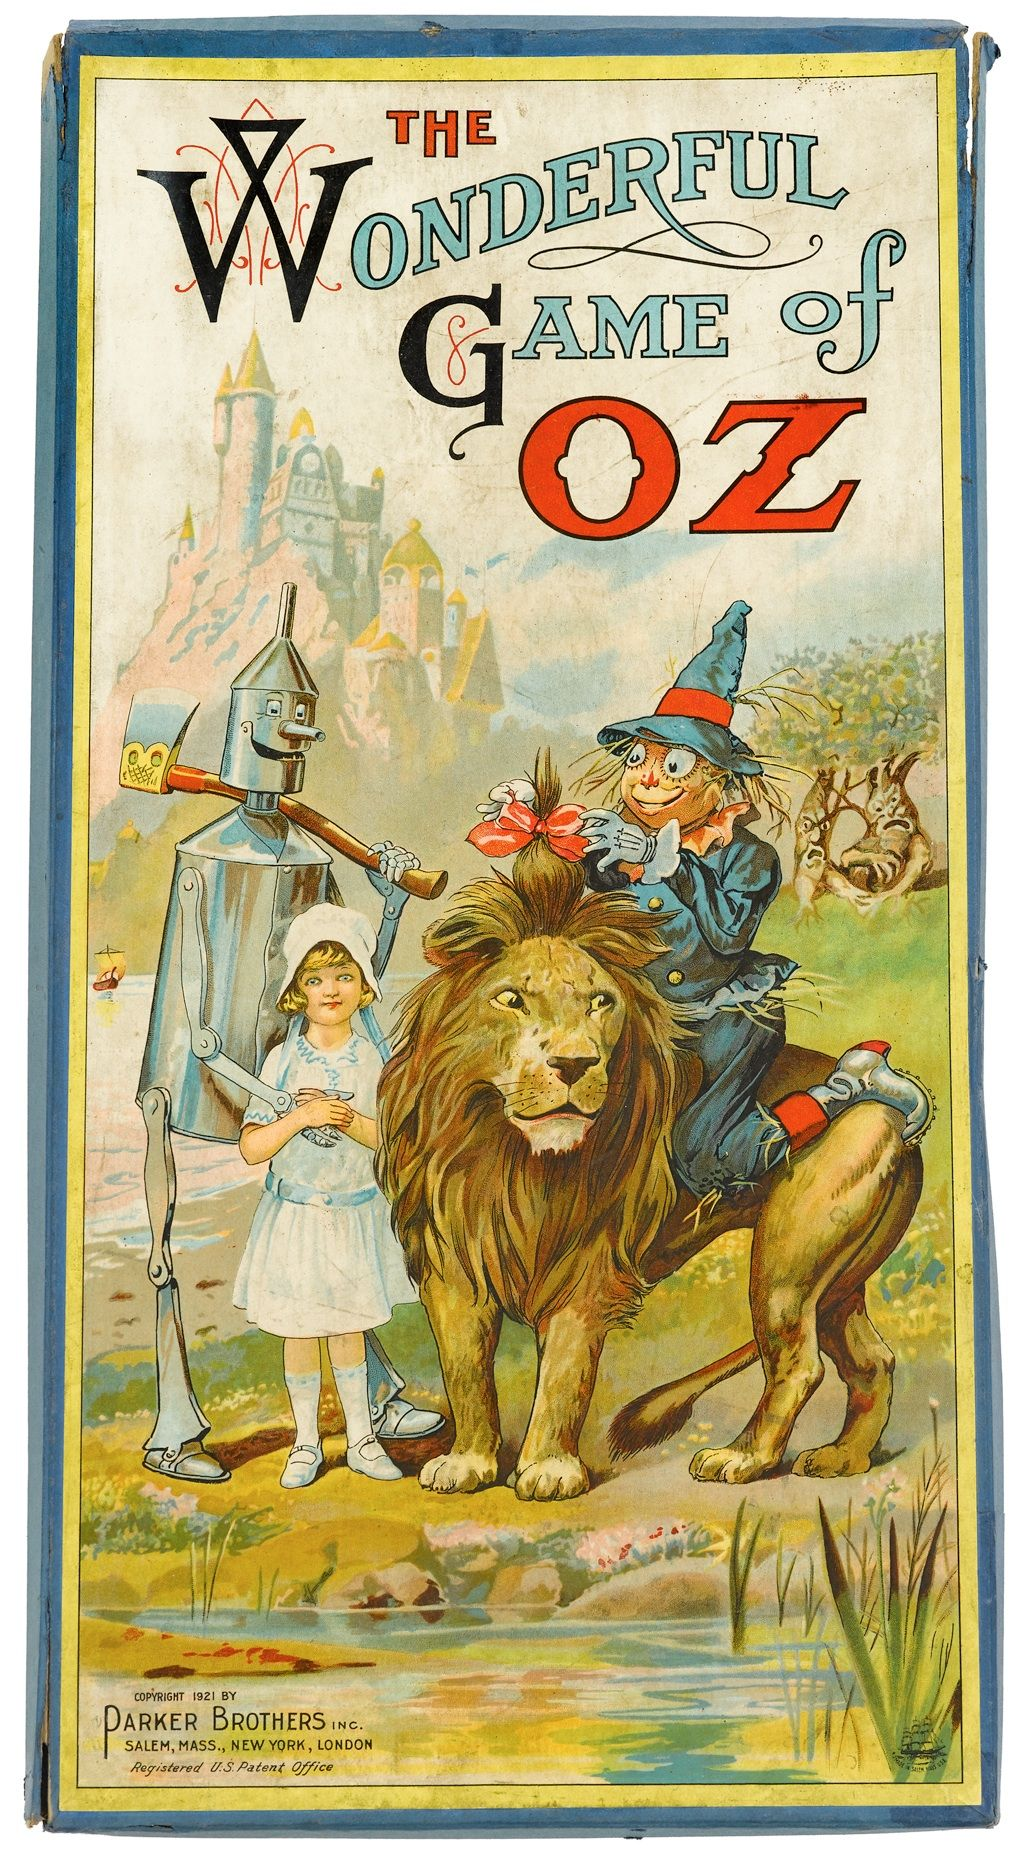 The First Wizard Of Oz Themed Board Game Sold To 1920s Superfans The Wonderful Wizard Of Oz Wizard Of Oz Wizard Of Oz Story